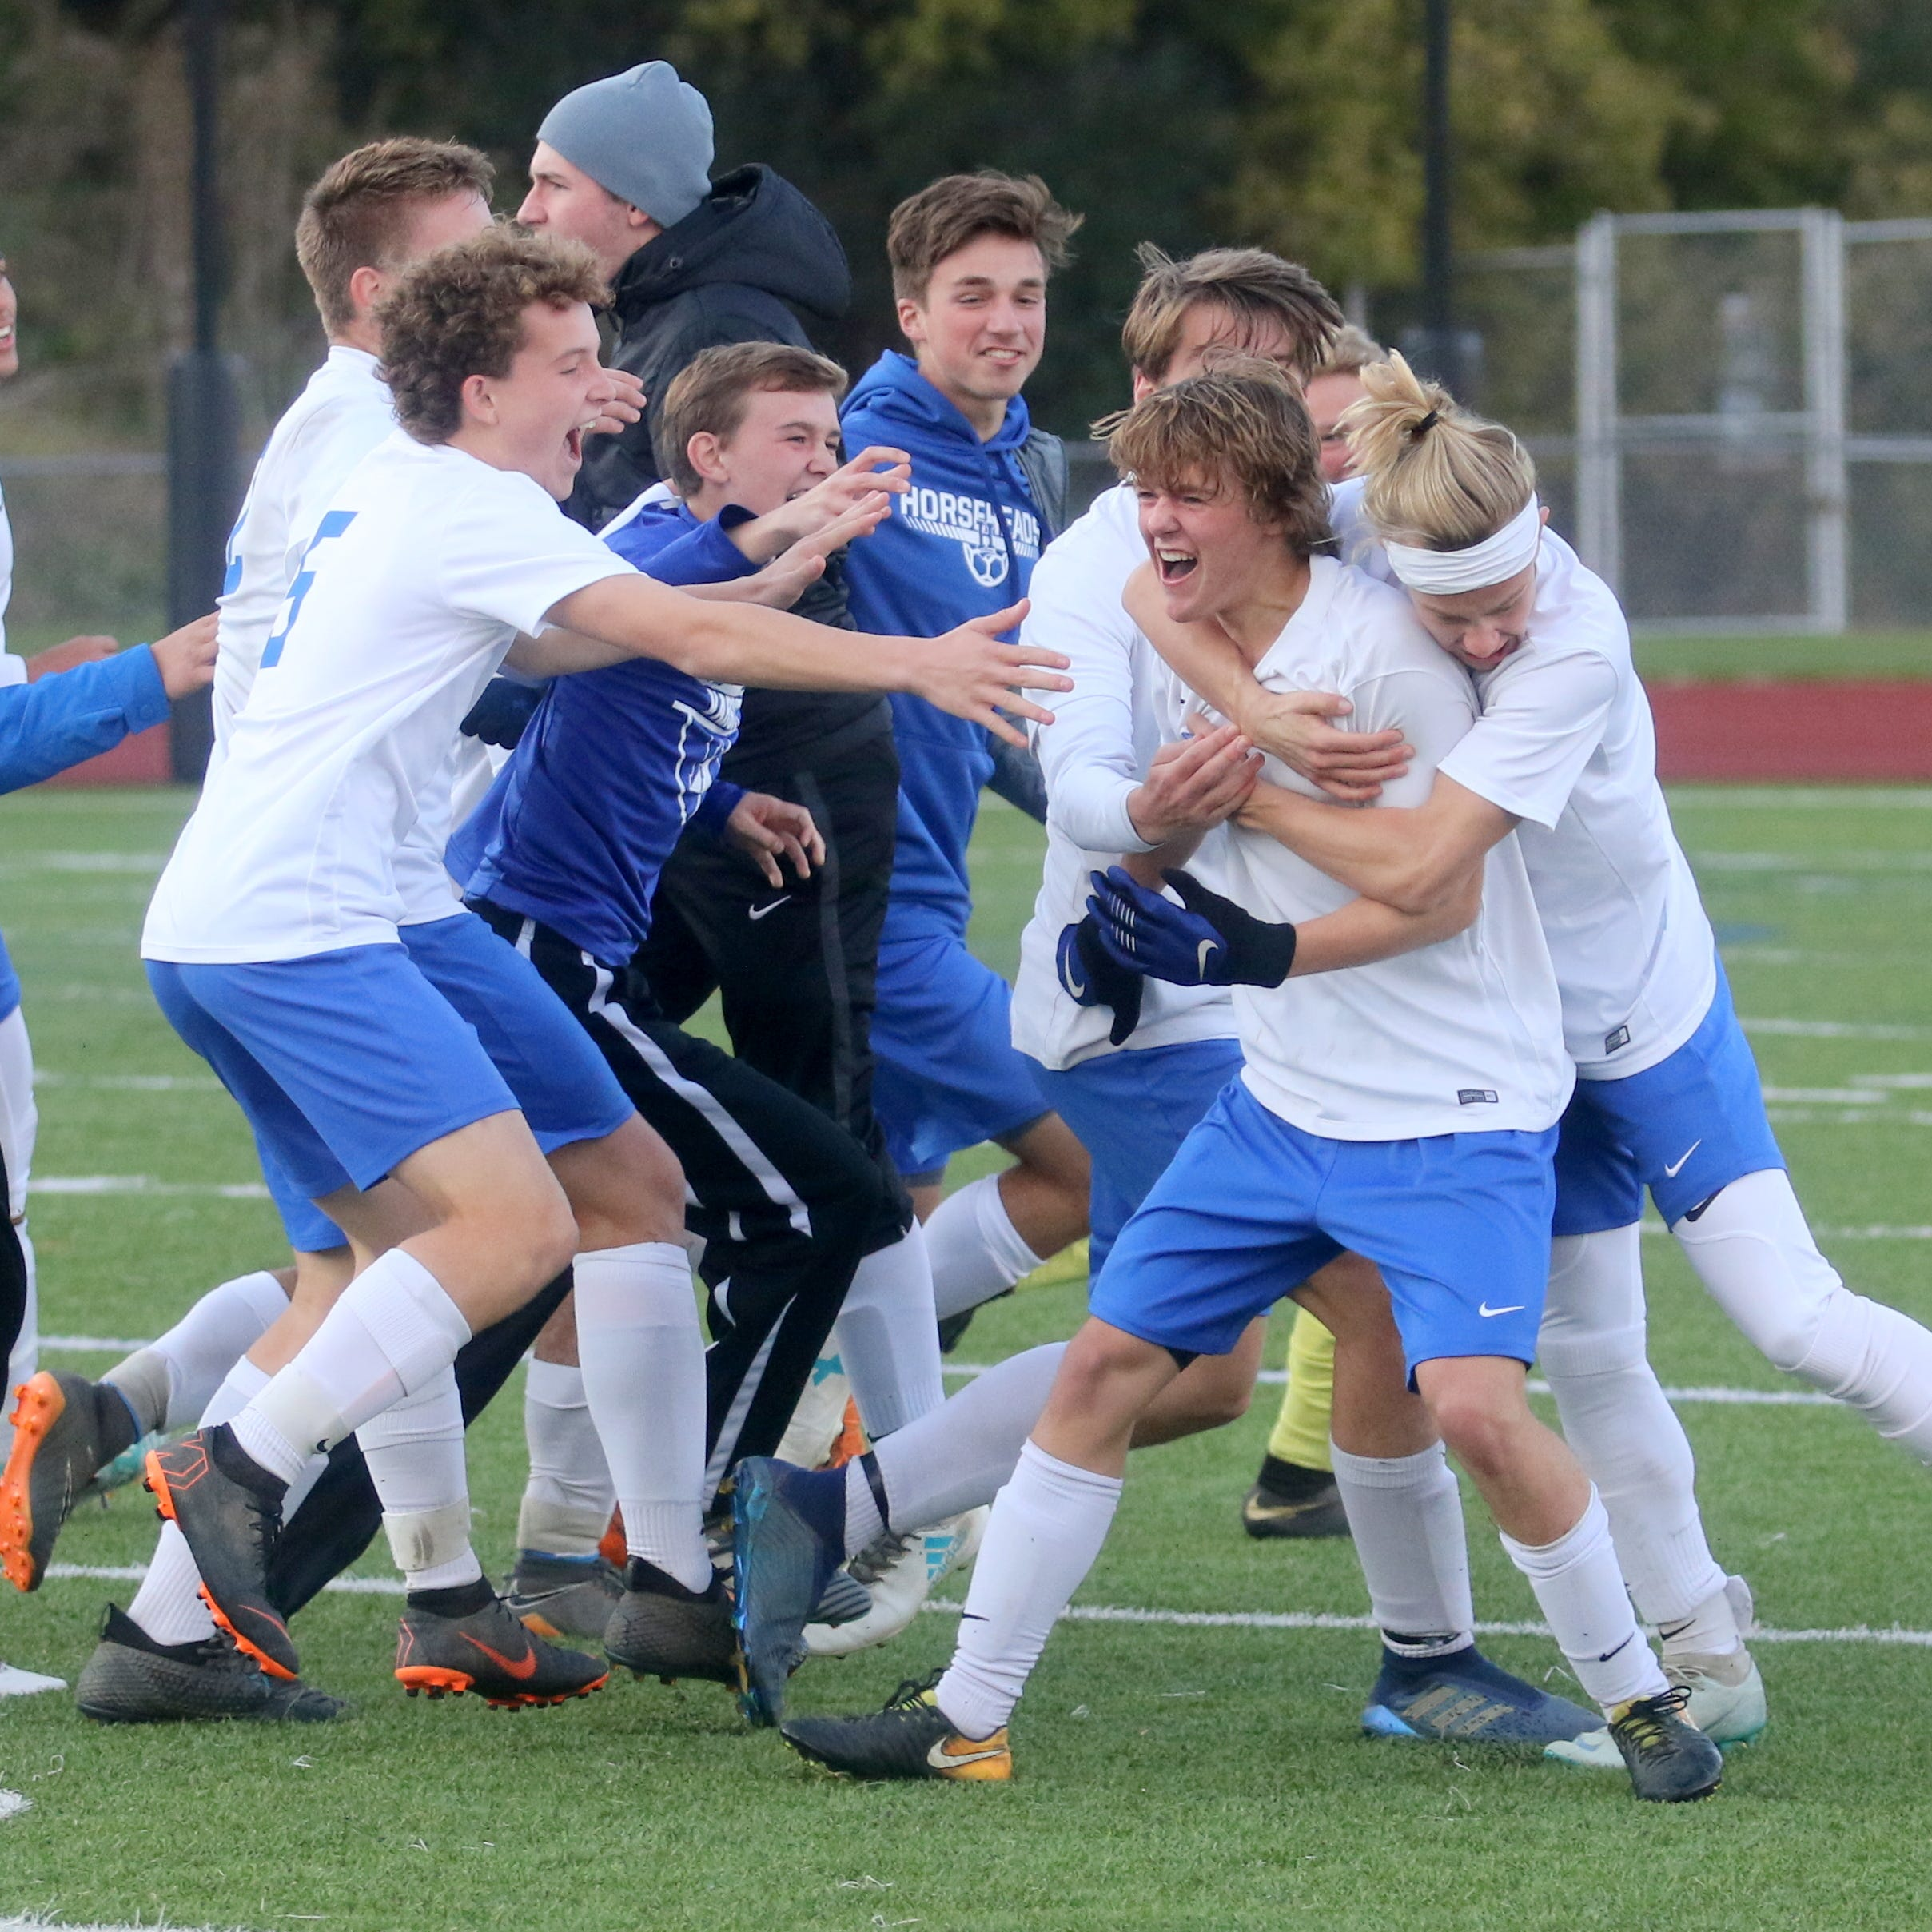 Thorpe's OT winner sends Horseheads past Elmira in Class AA boys soccer semifinal